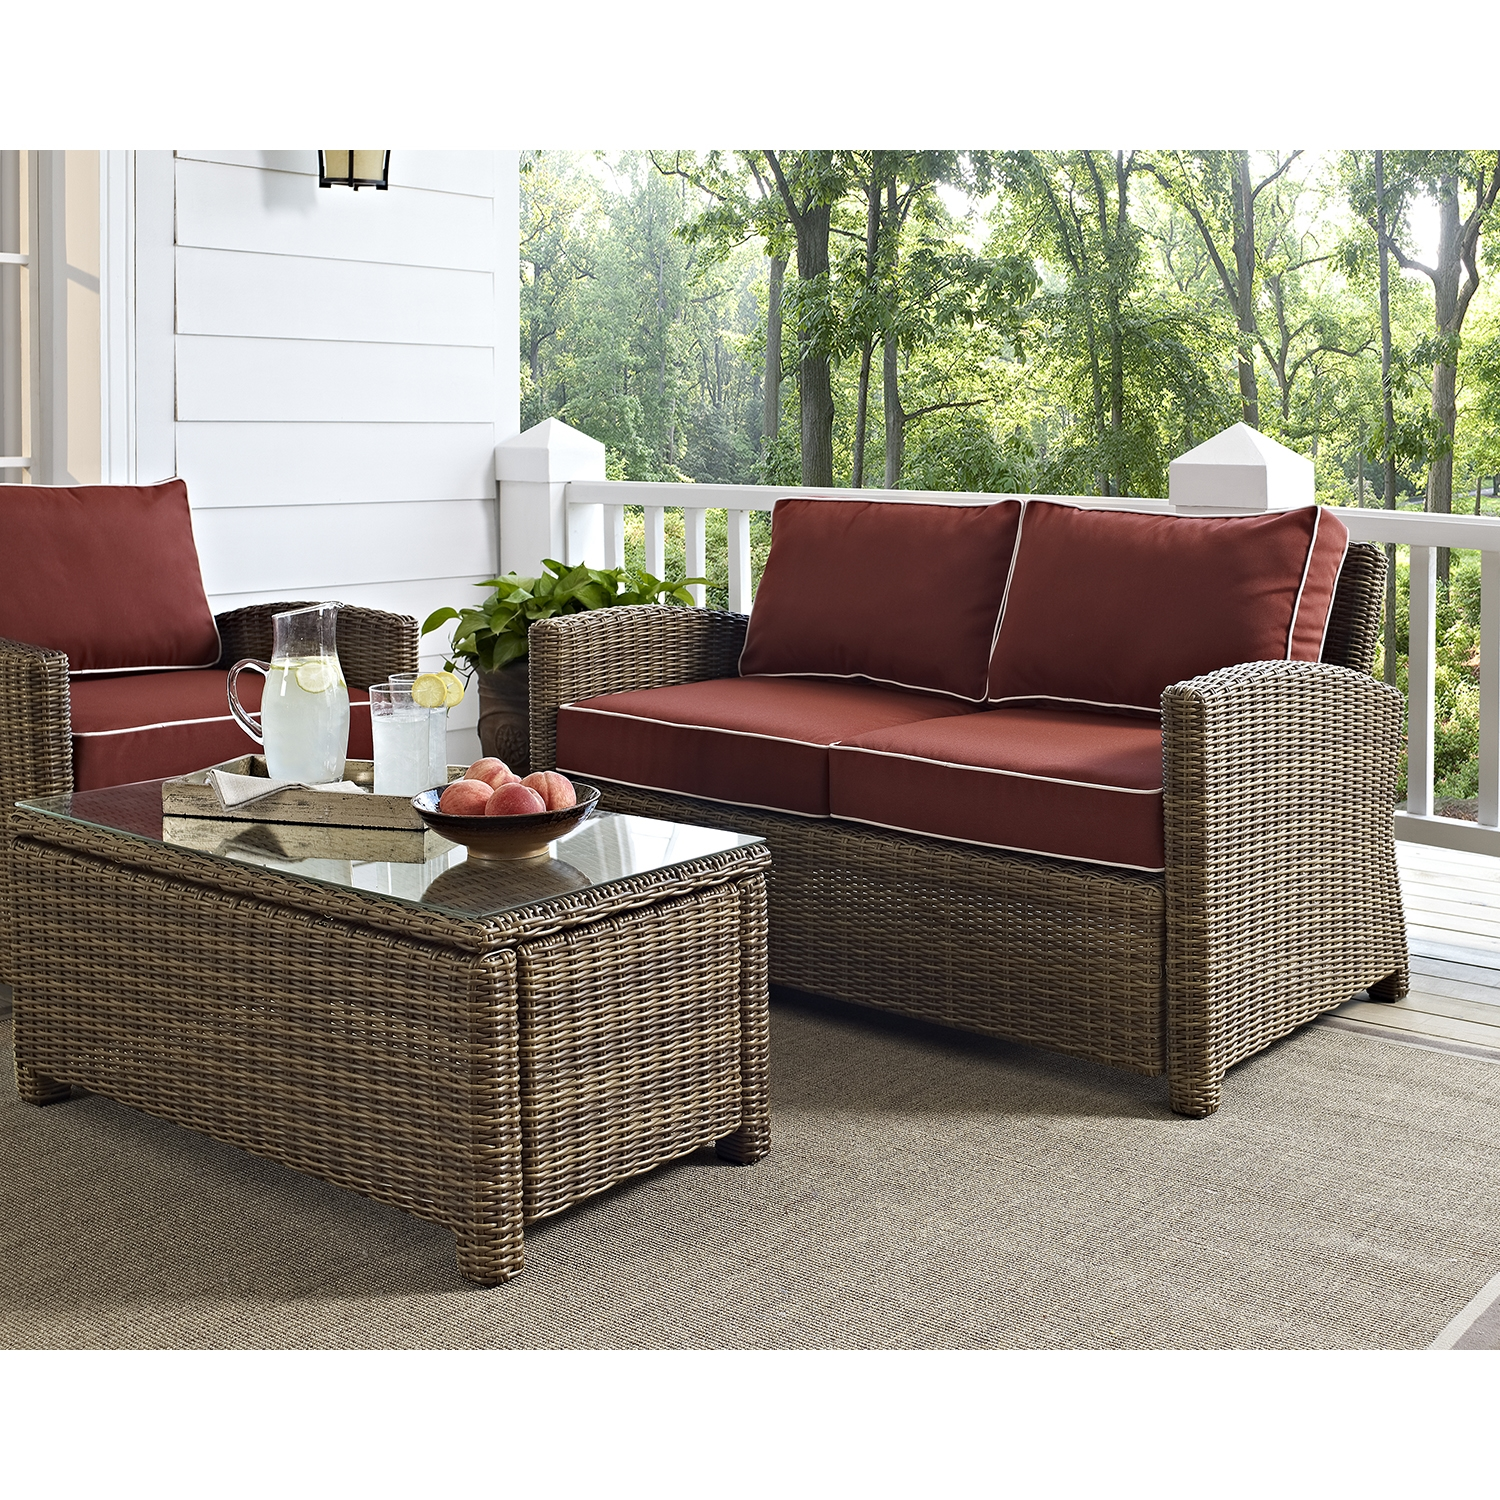 Bradenton Outdoor Wicker Loveseat - Sangria Cushions - CROS-KO70022WB-SG